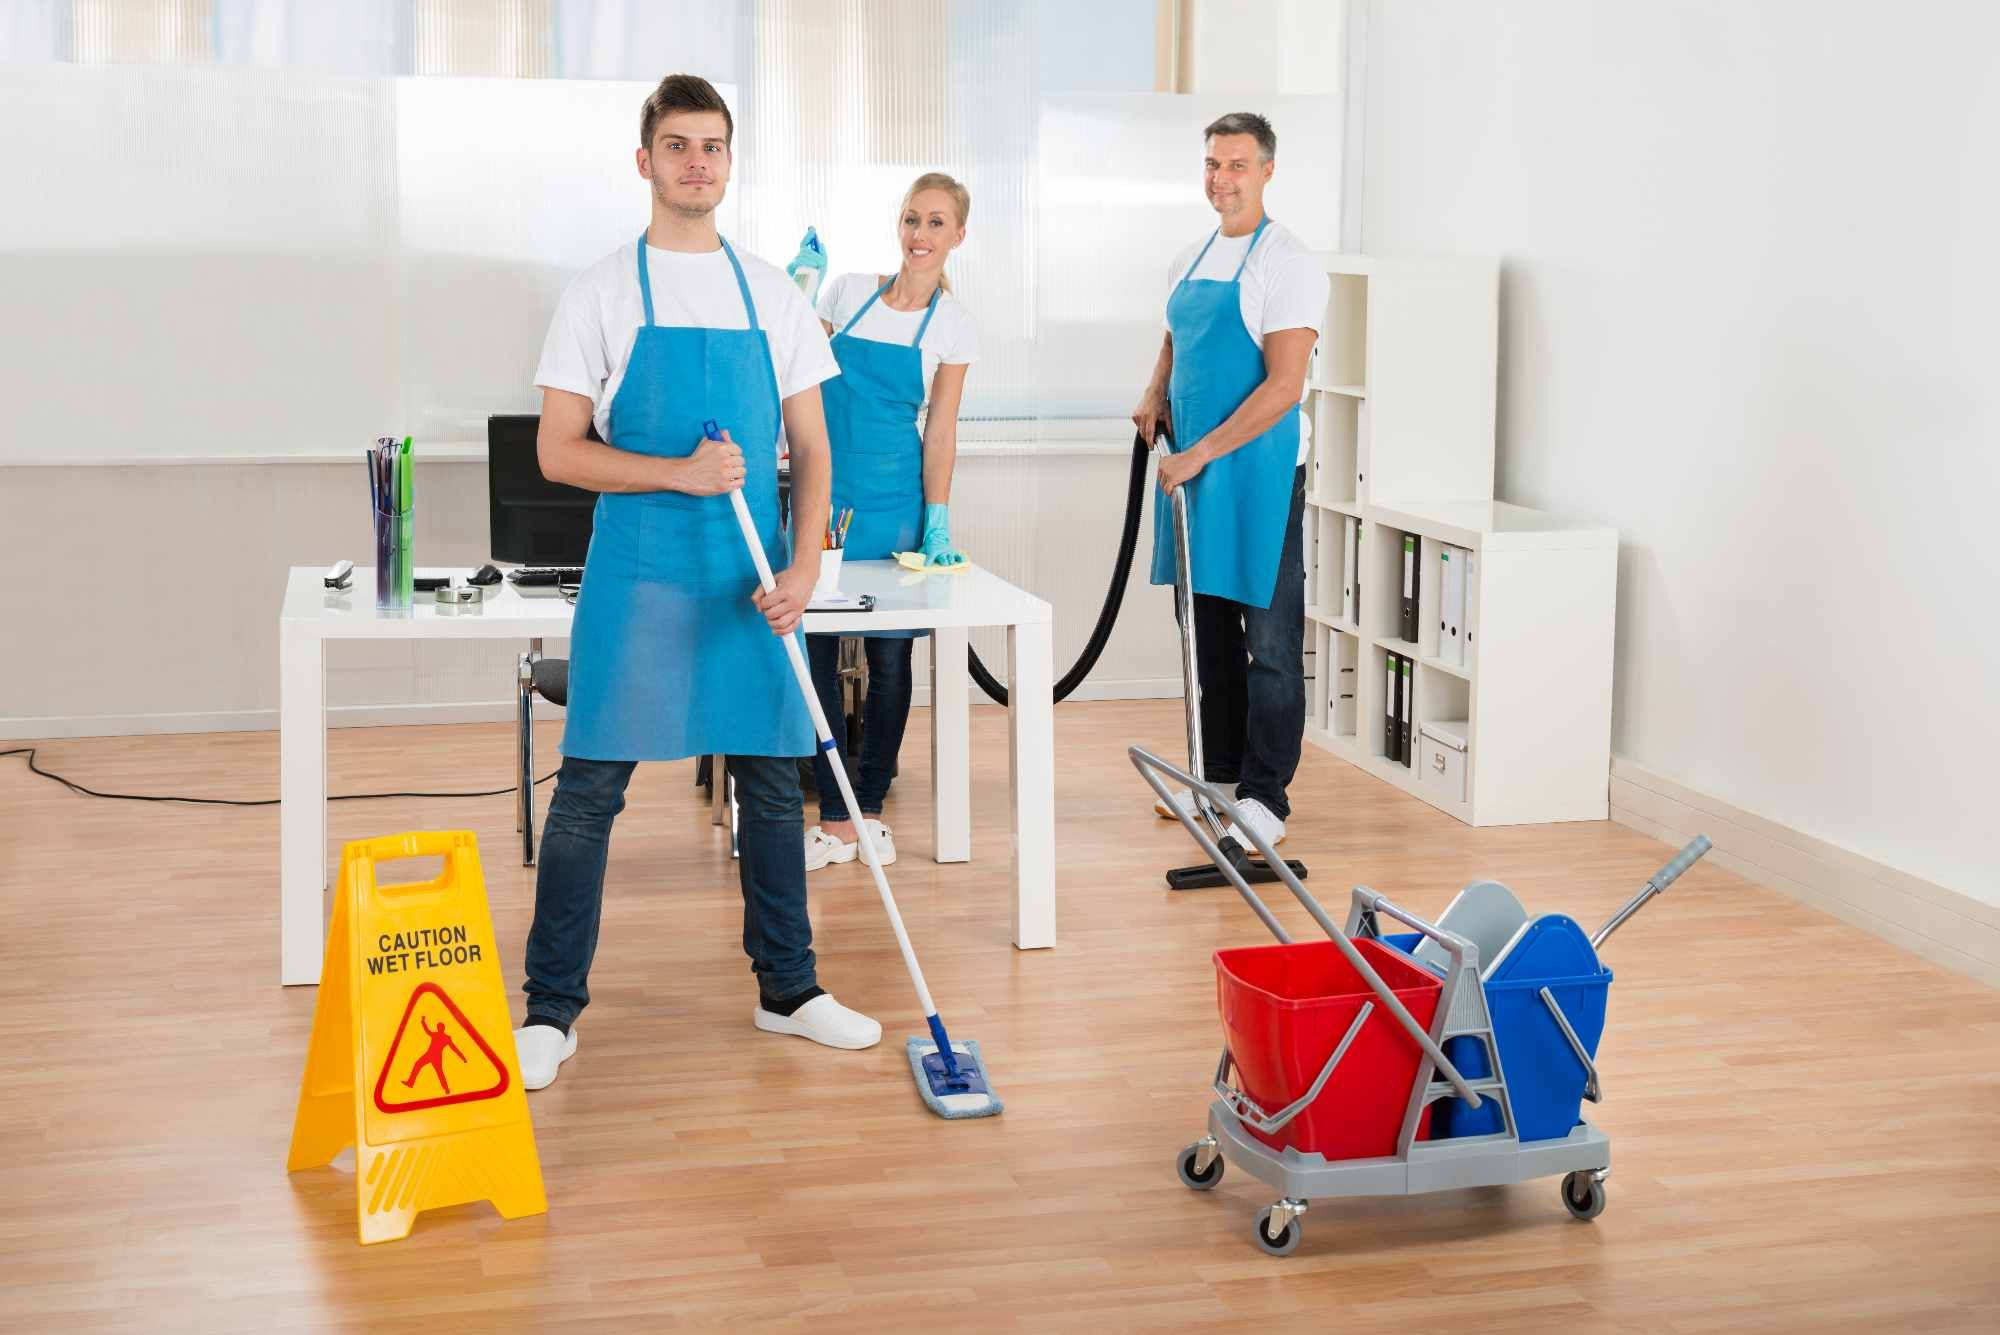 commericial cleaning